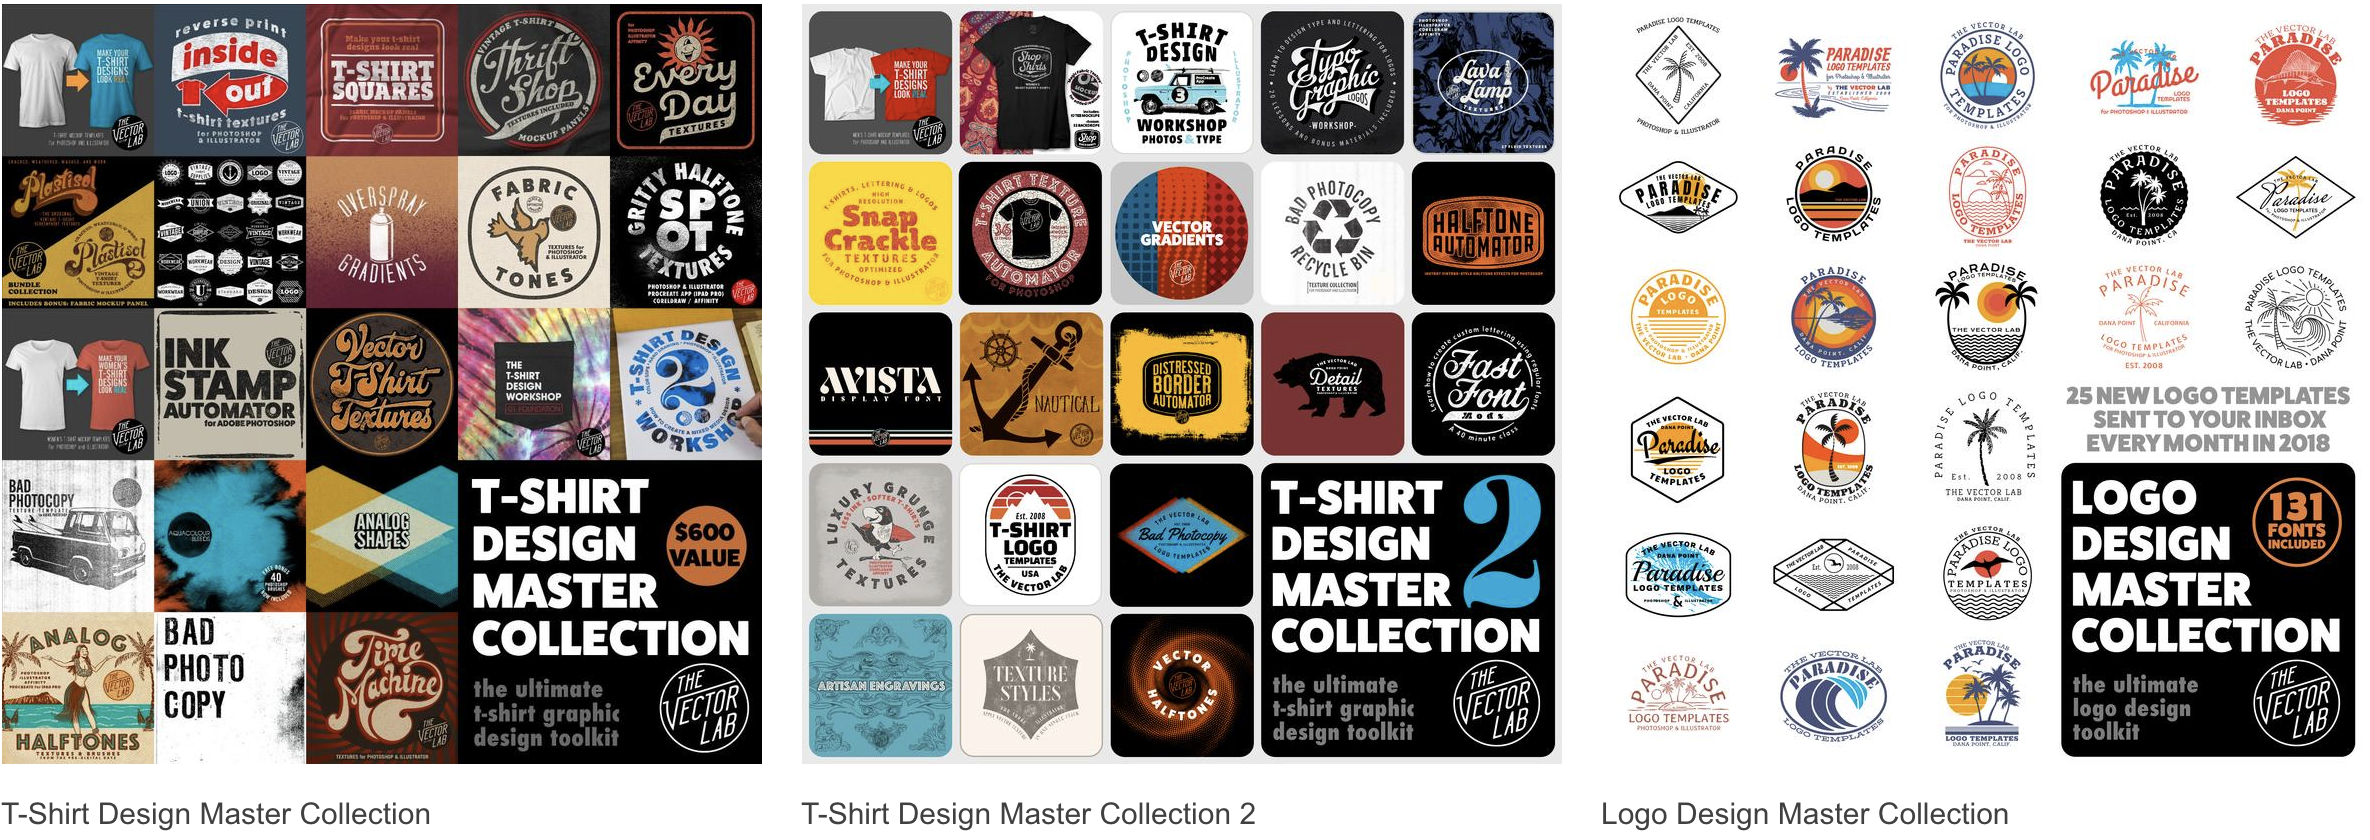 TheVectorLab Master Collection Bundles